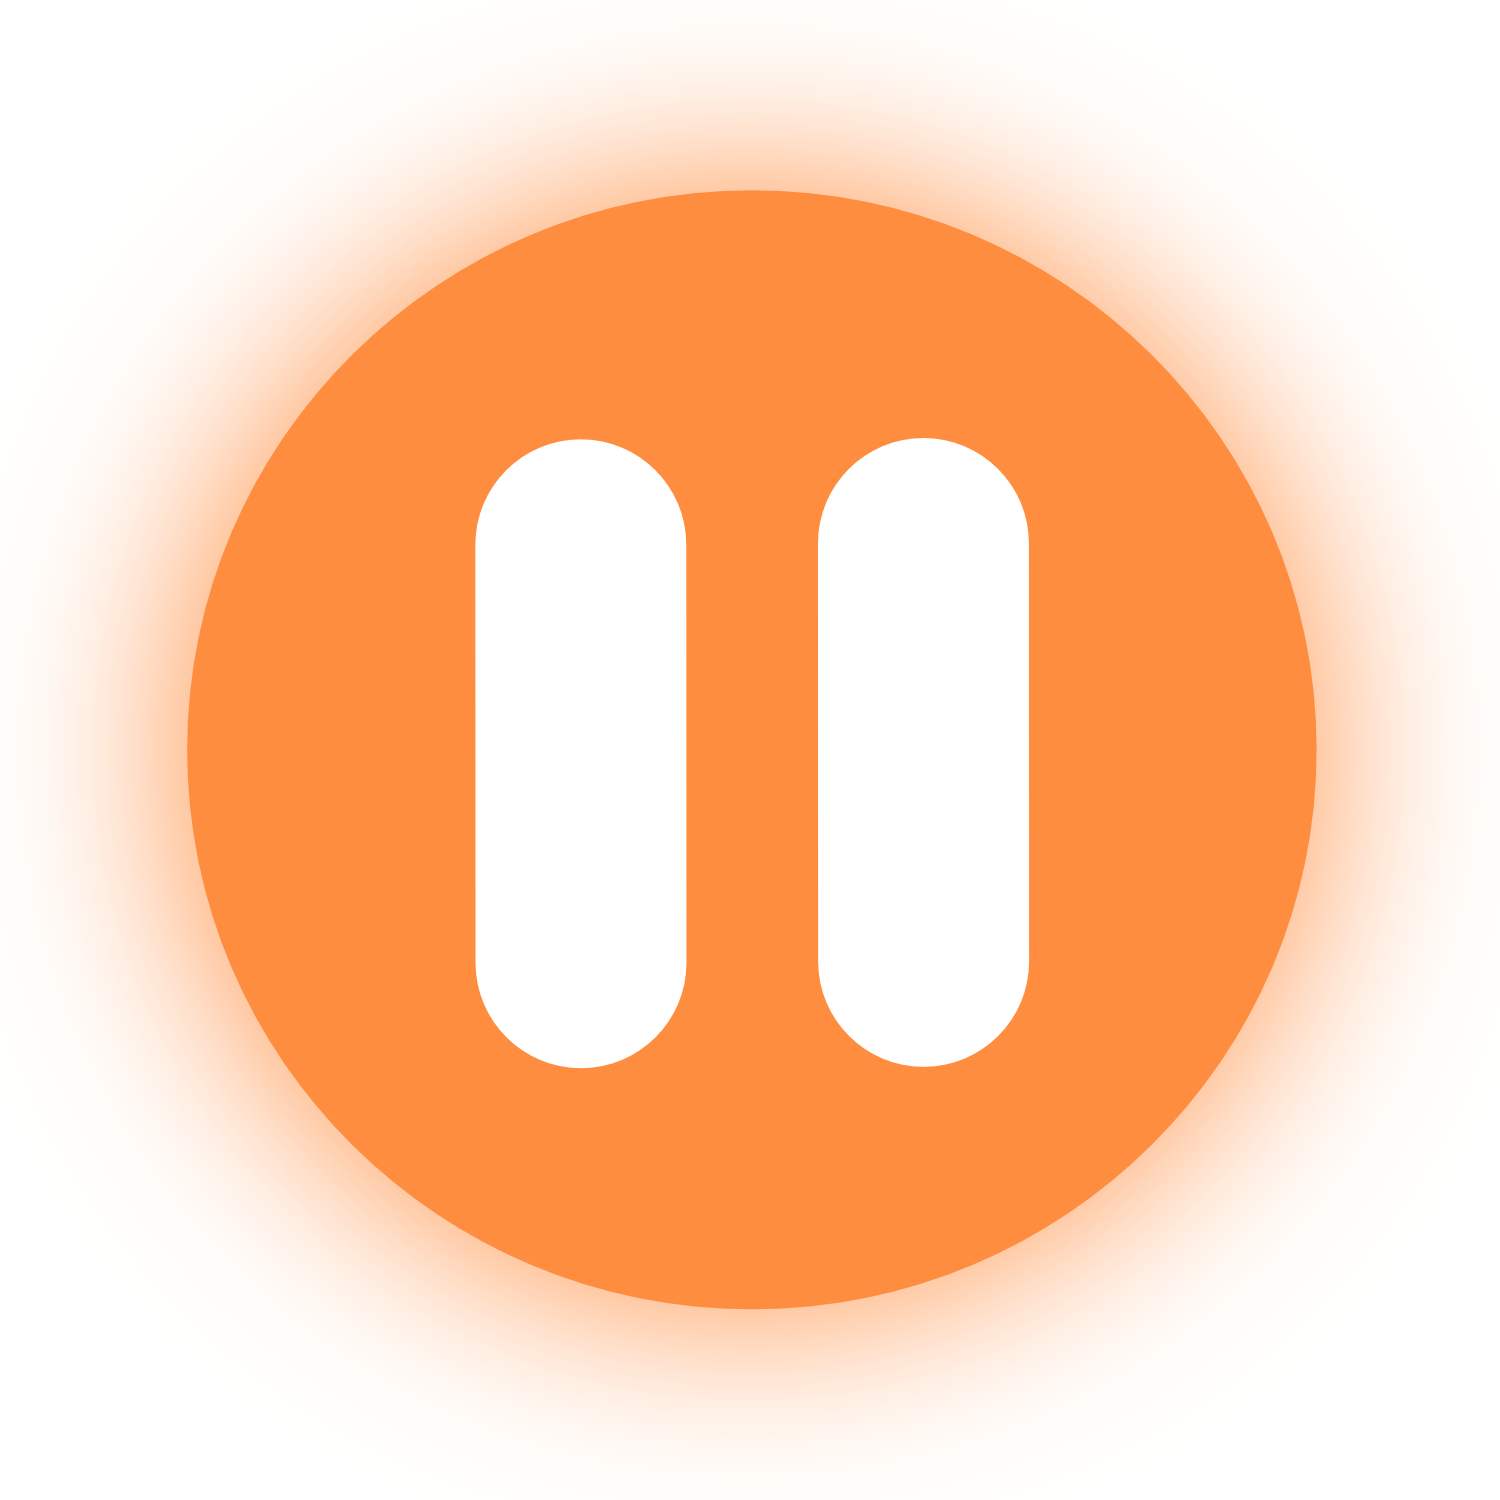 Orange circle with a white pause symbol on the middle. There is an orange glow surrounding the circle.